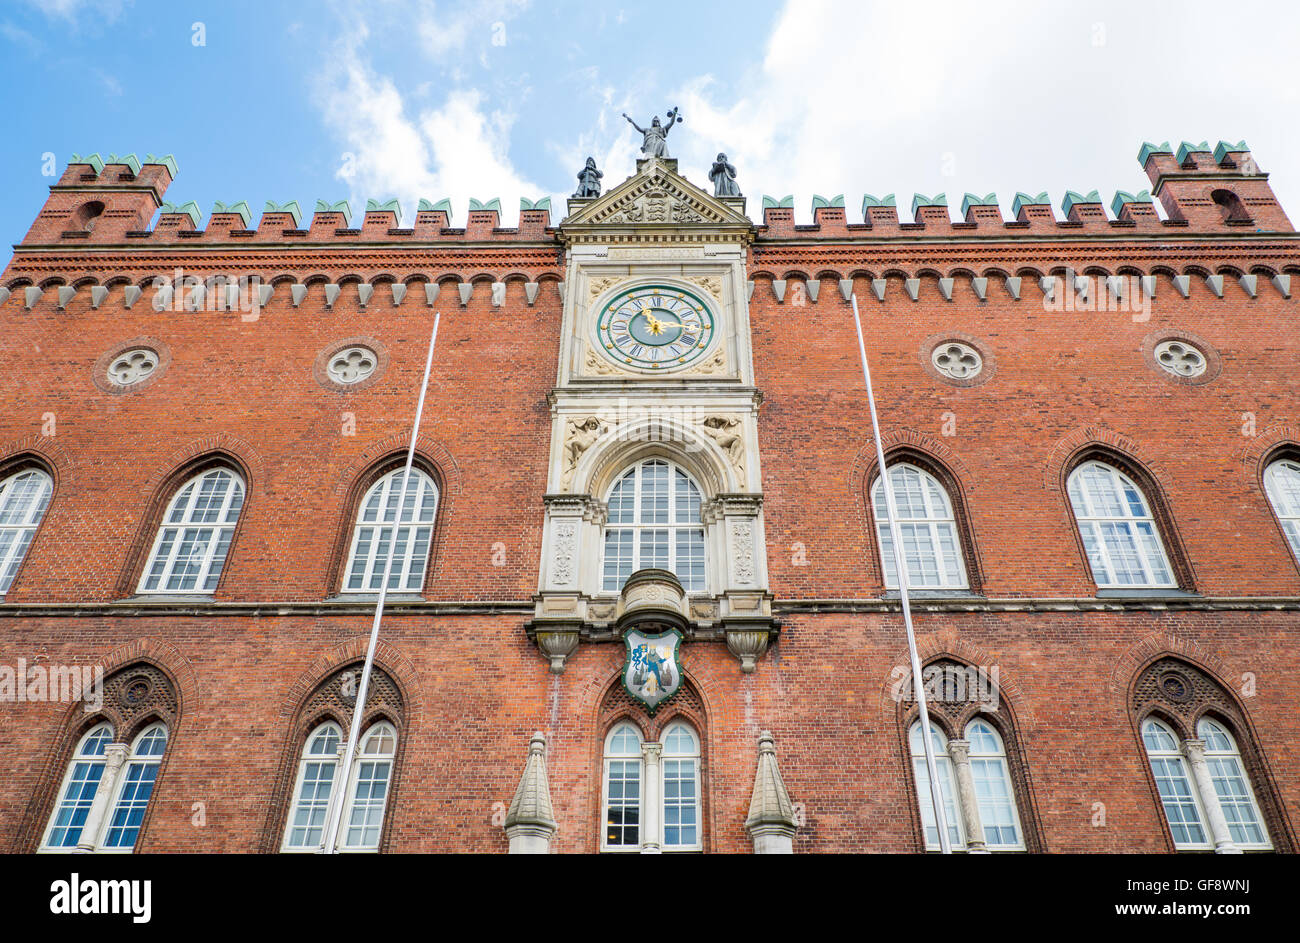 Odense, upward view of the City Hall facade Stock Photo